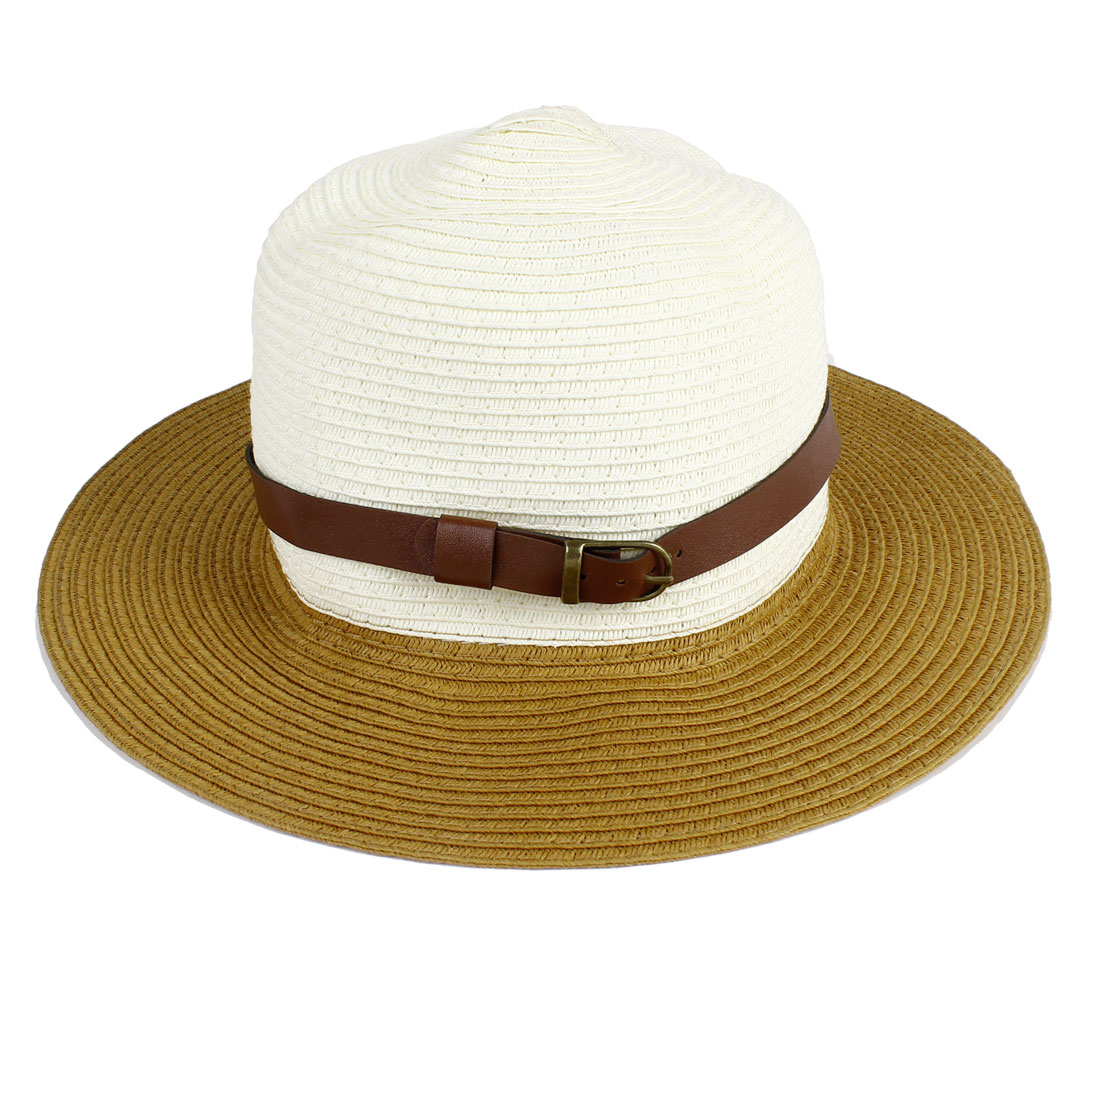 Woman 7cm Wide Brim Stitch Brimmed Bucket Summer Beach Hat Cap Khaki Beige